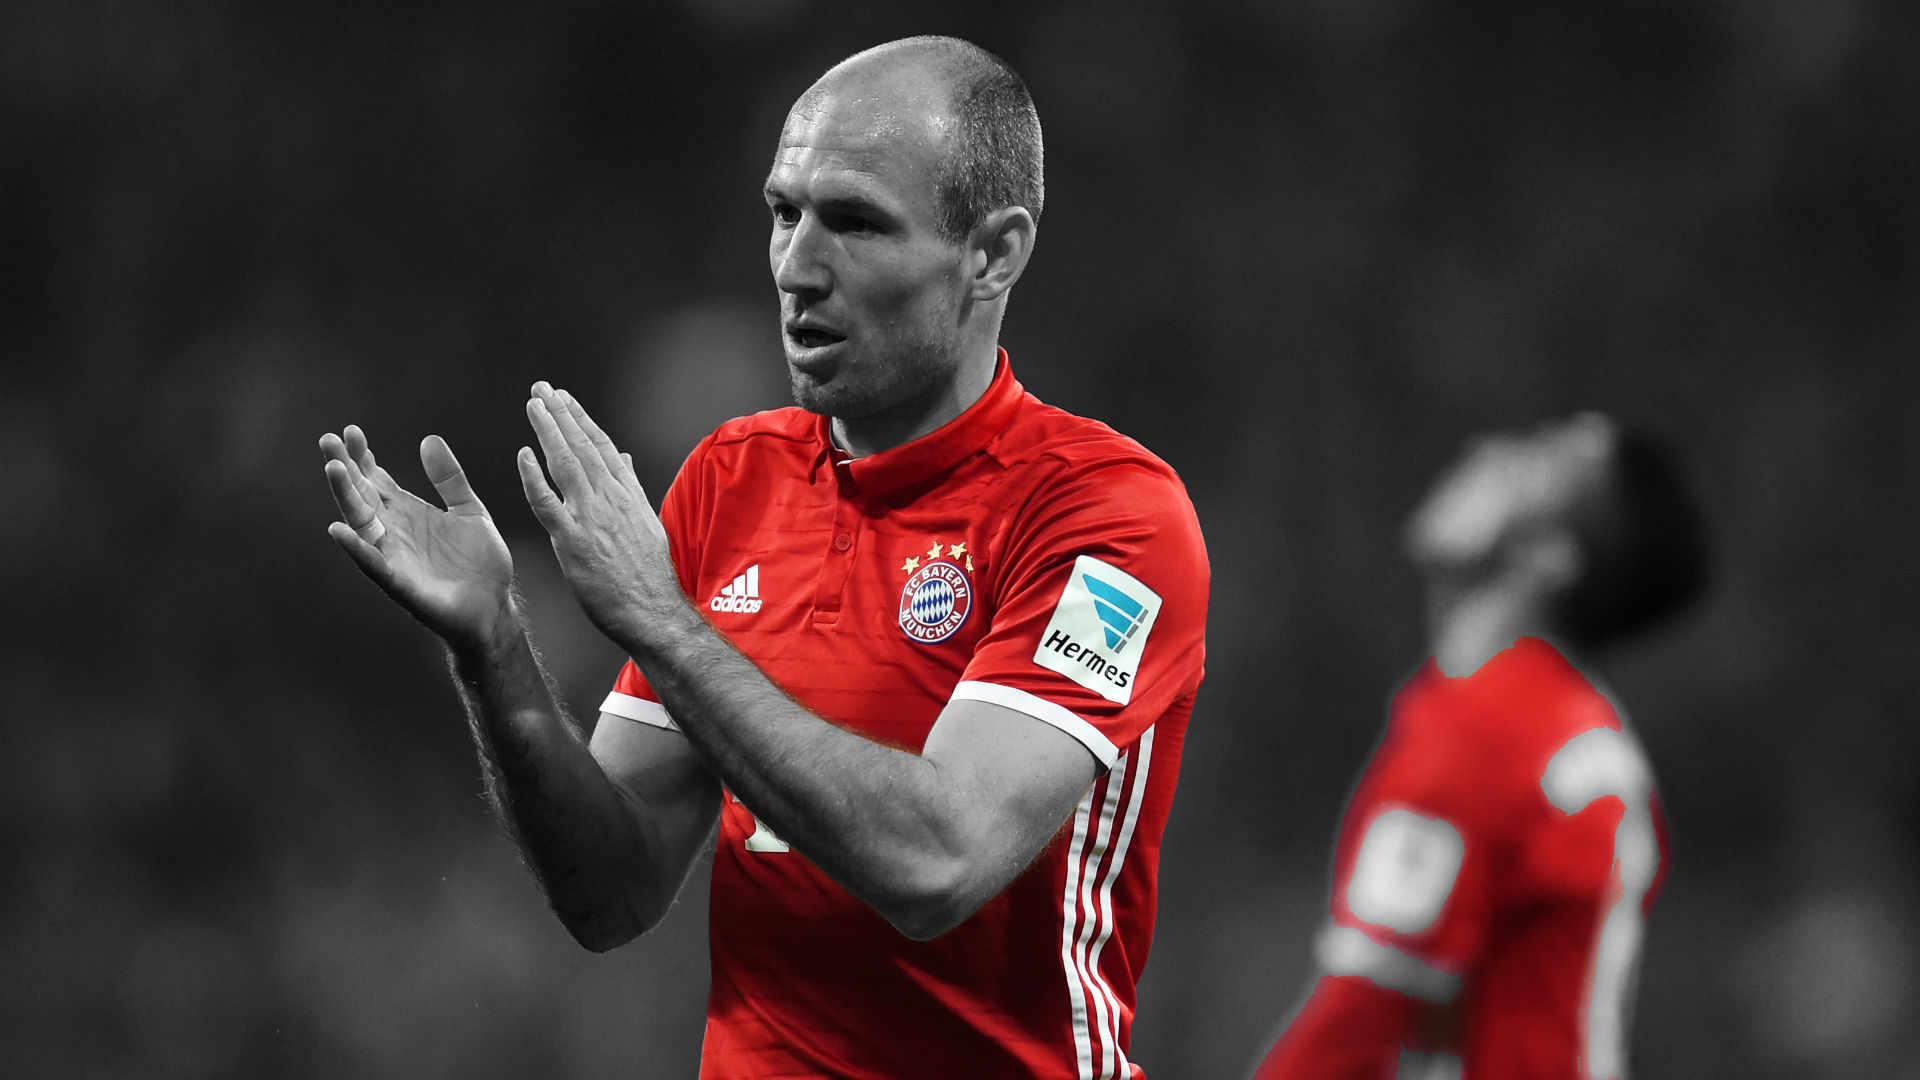 Robben: Arsenal's Target Is The Quarters, Ours is Always The Final